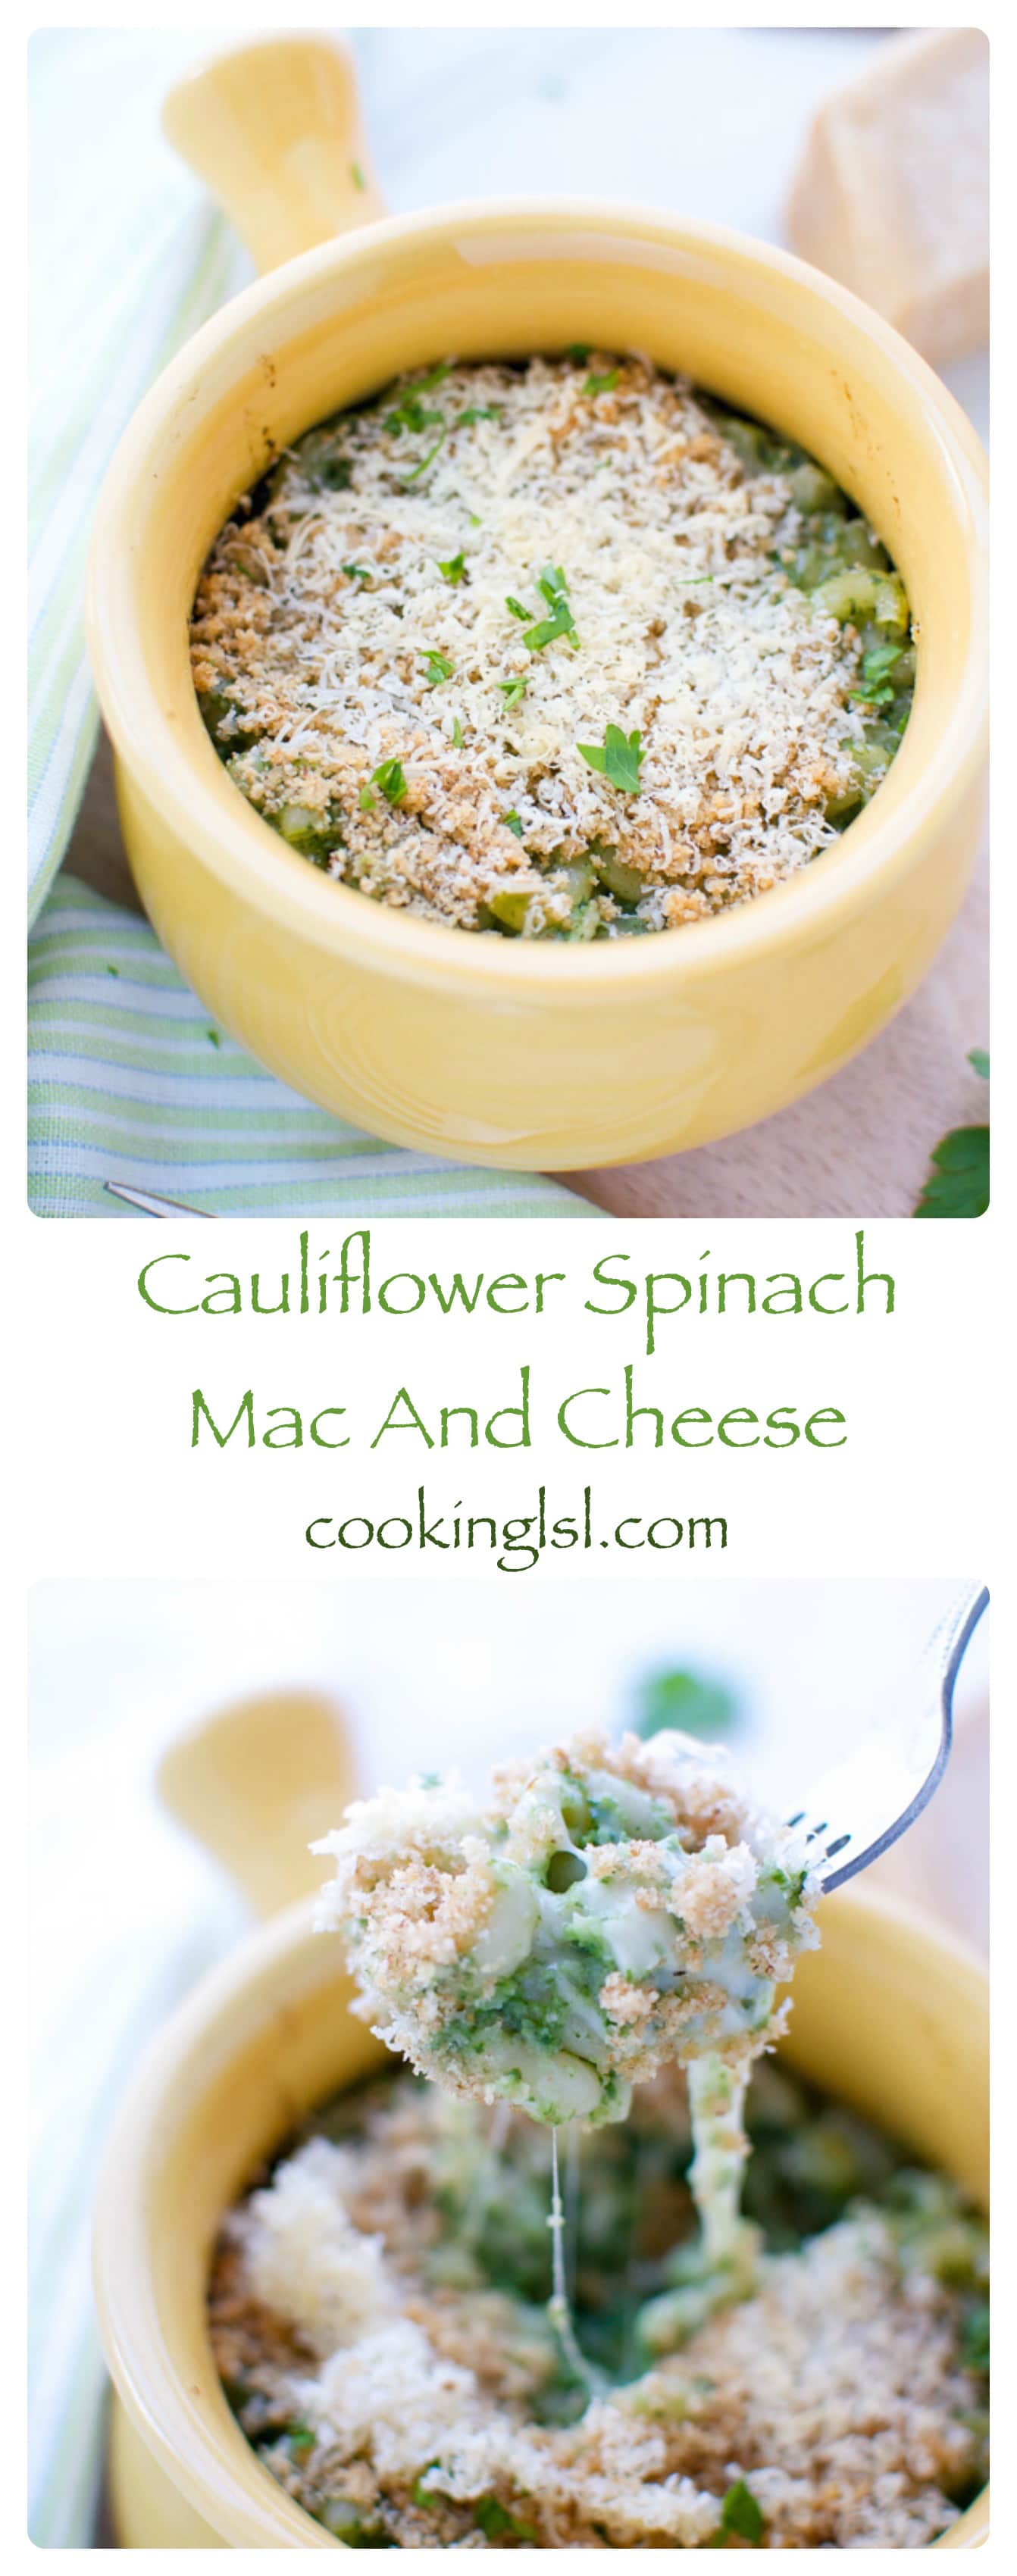 Cauliflower-Spinach-Mac-And-Cheese